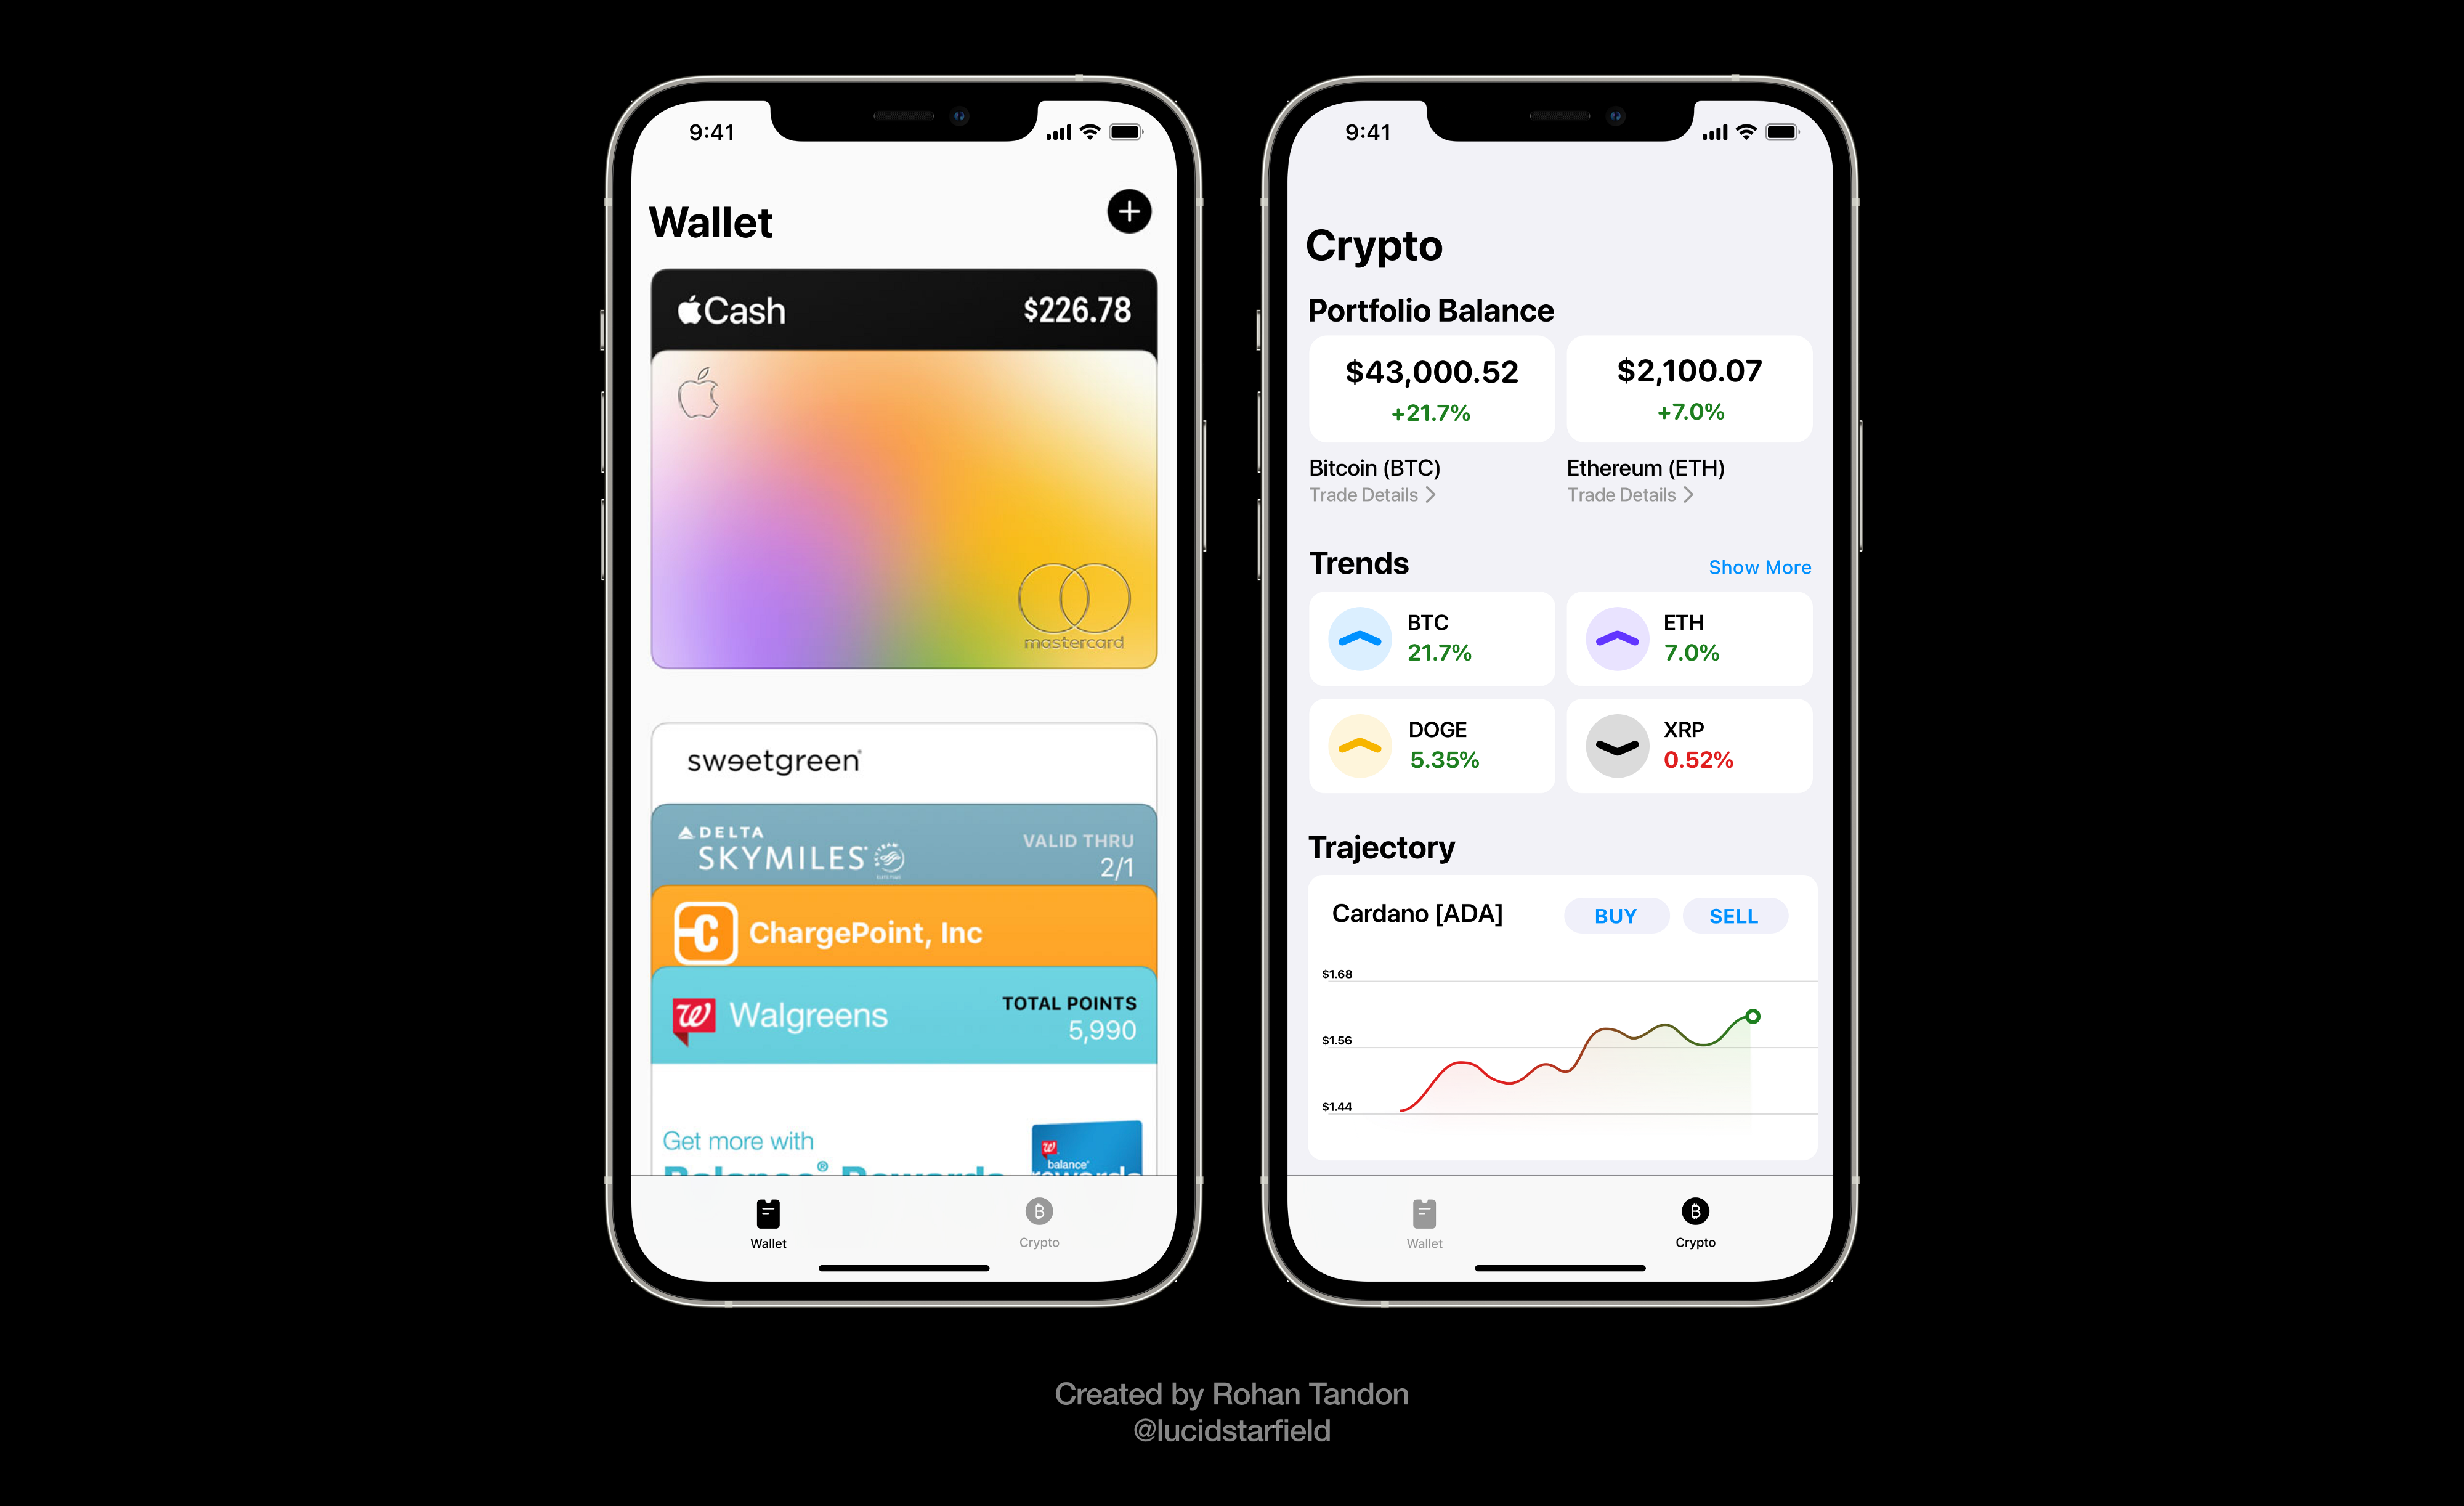 iOS 15 Aurora imagines an extra page within the app to manage cryptocurrency—portfolio balance, trends, trajectory, and the ability to buy/sell within the app